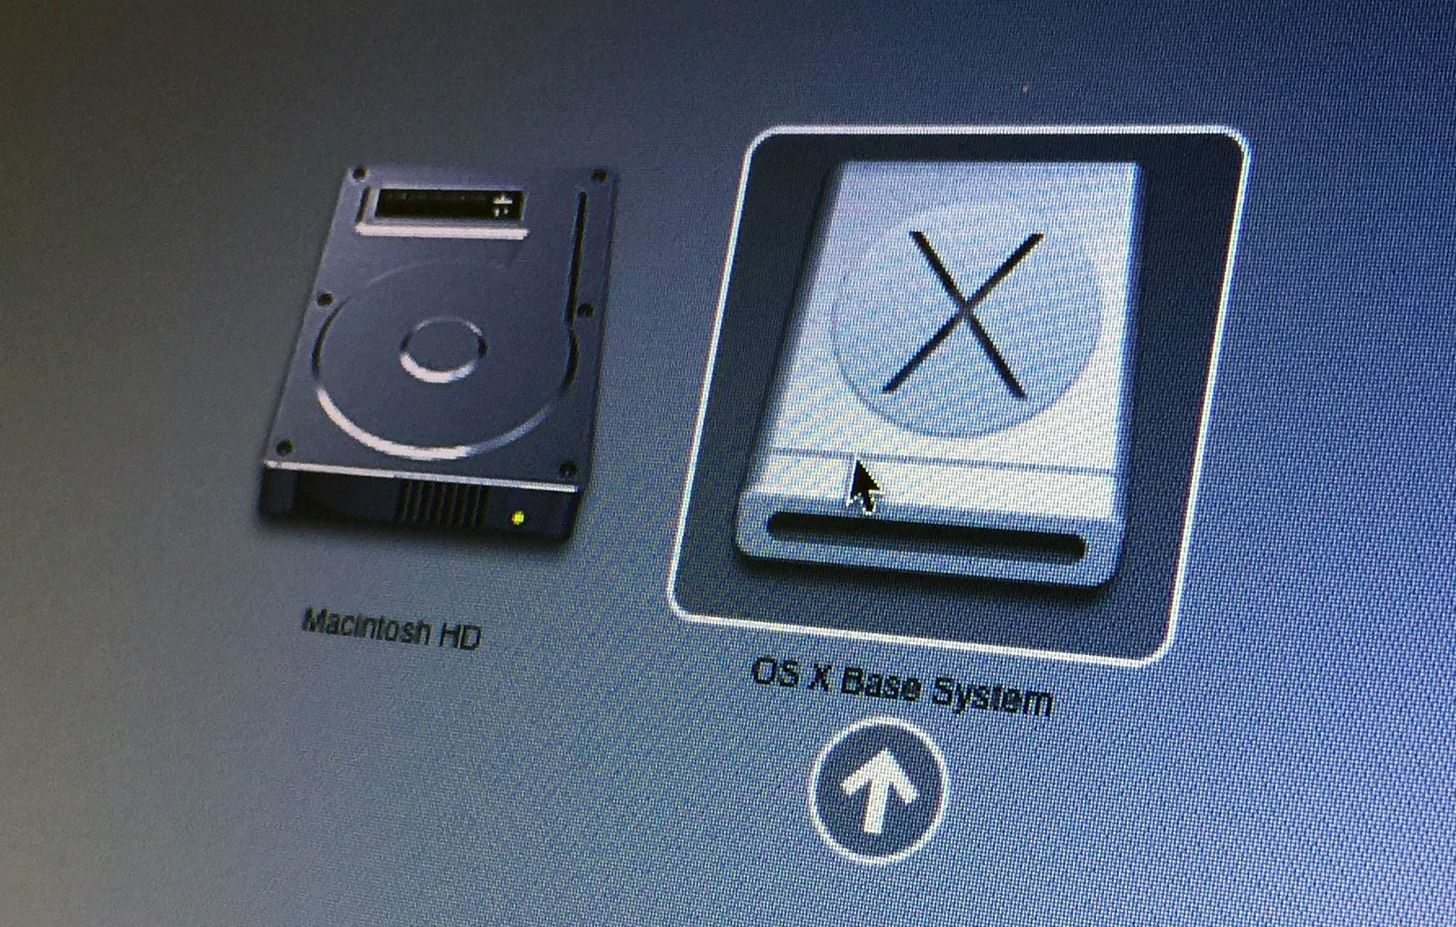 How to Create a Bootable Install USB Drive of Mac OS X 10.11 El Capitan